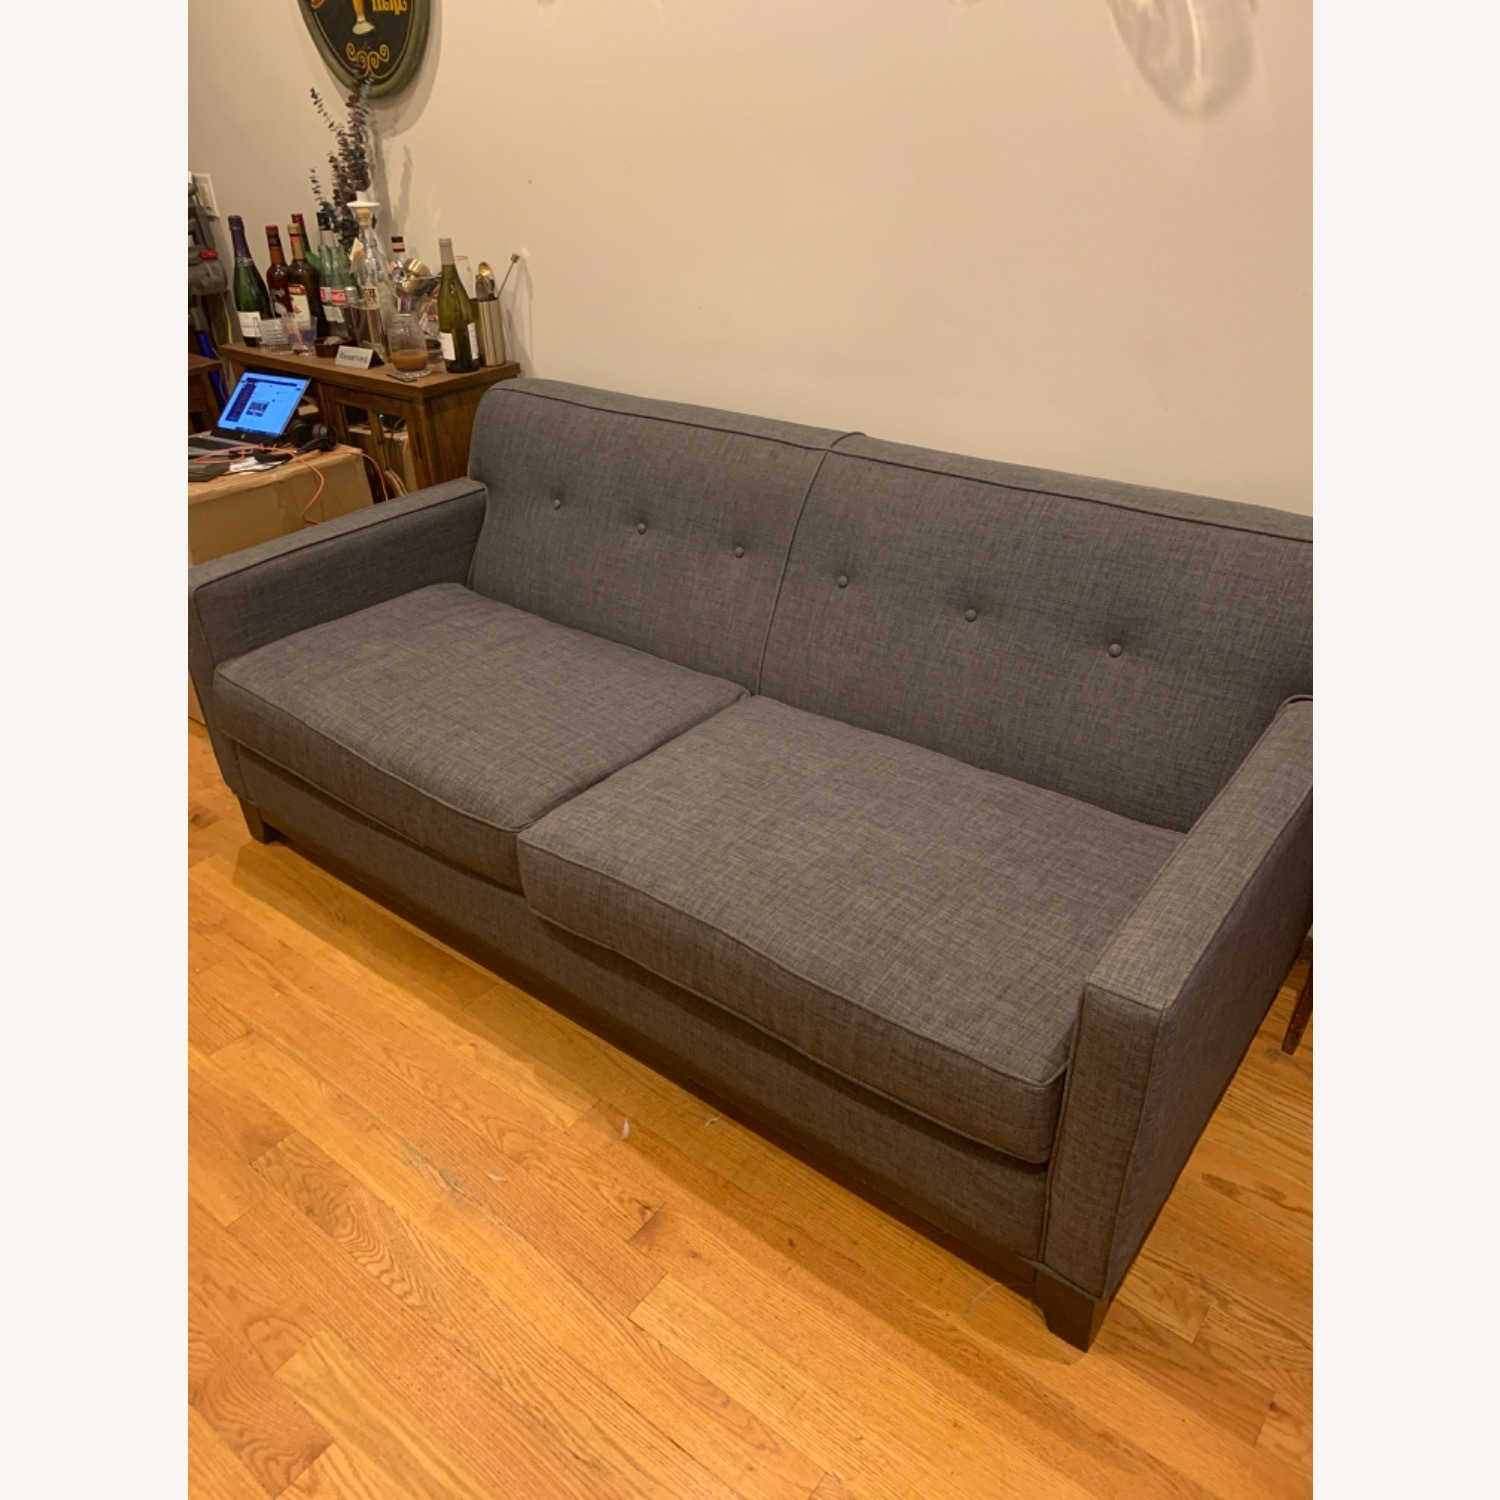 Raymour & Flanigan Mid Century Sofa/Couch - image-1